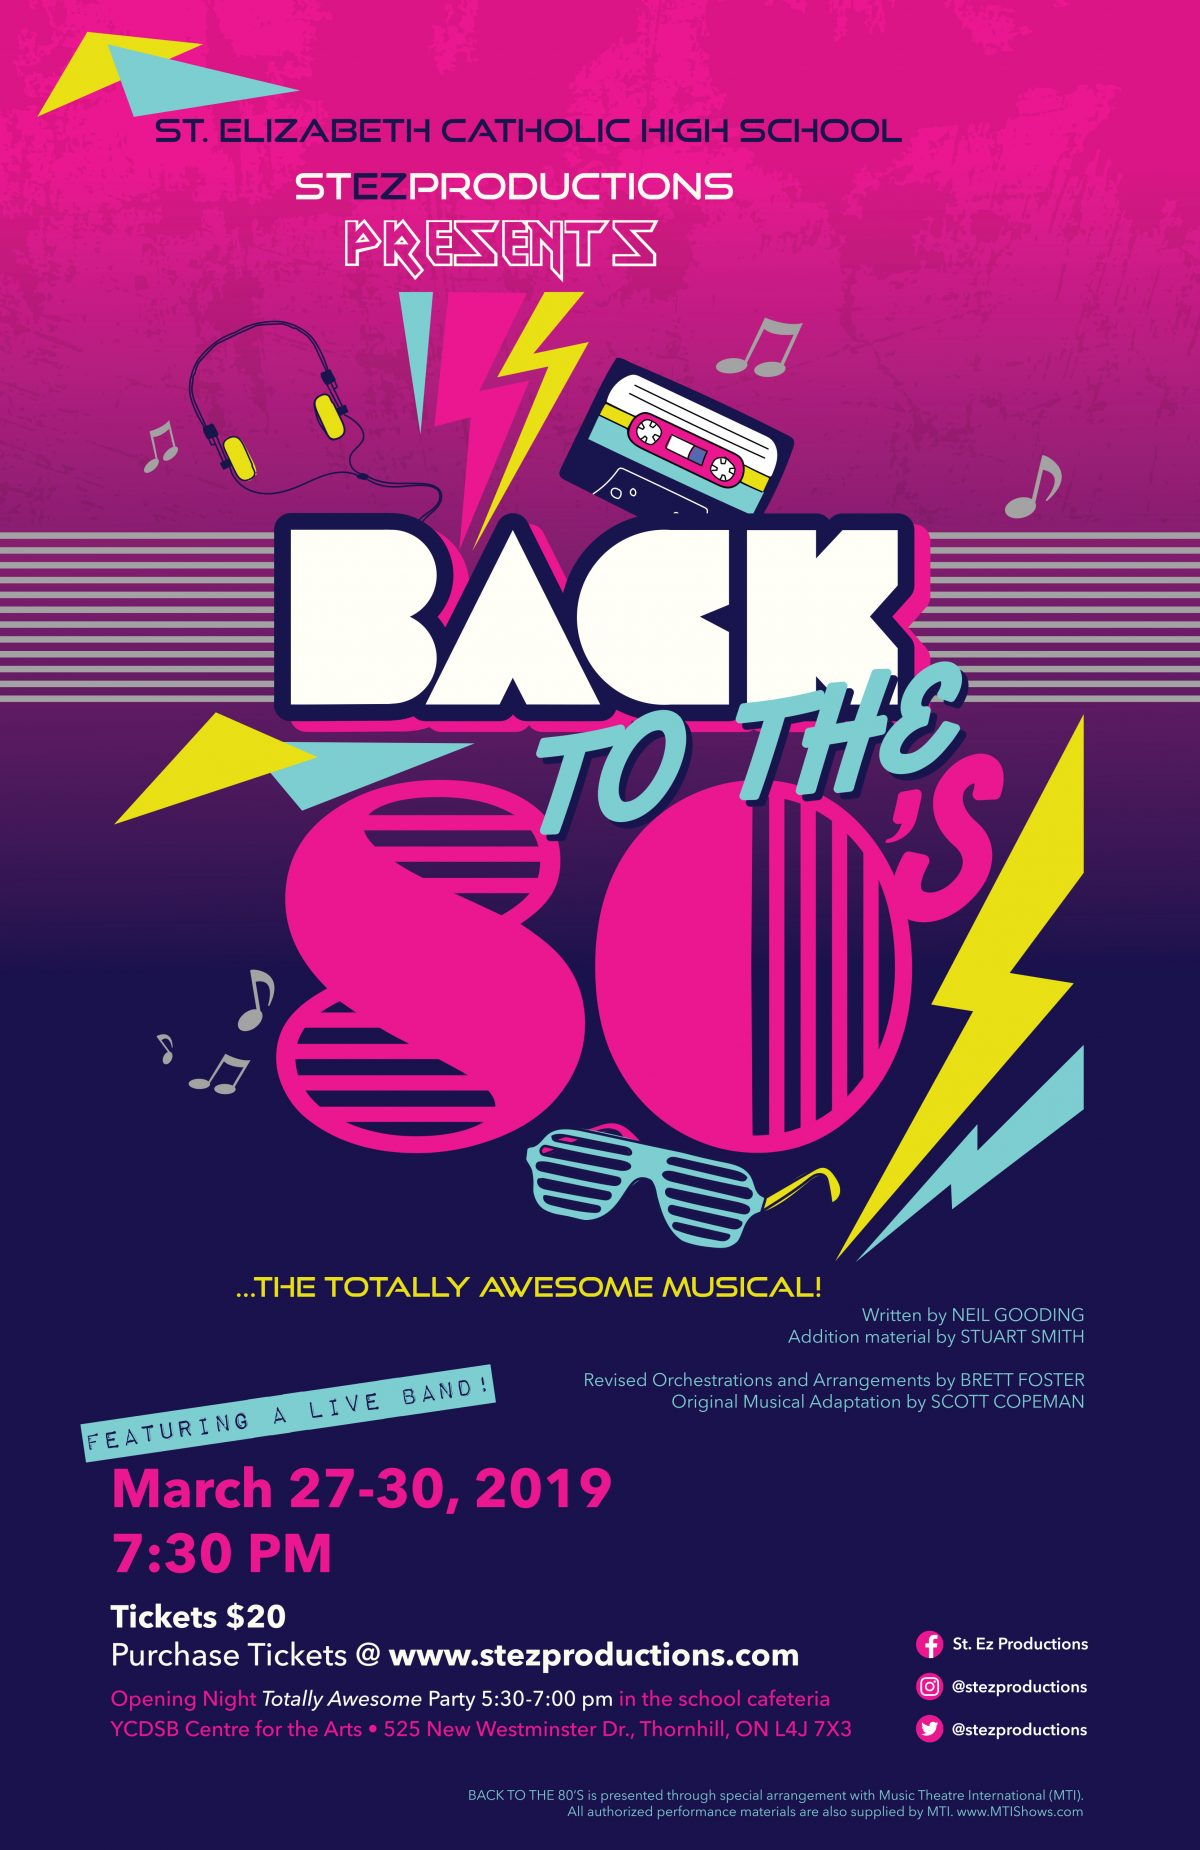 St.Ez Productions presents Back to the 80's…the Totally Awesome Musical!